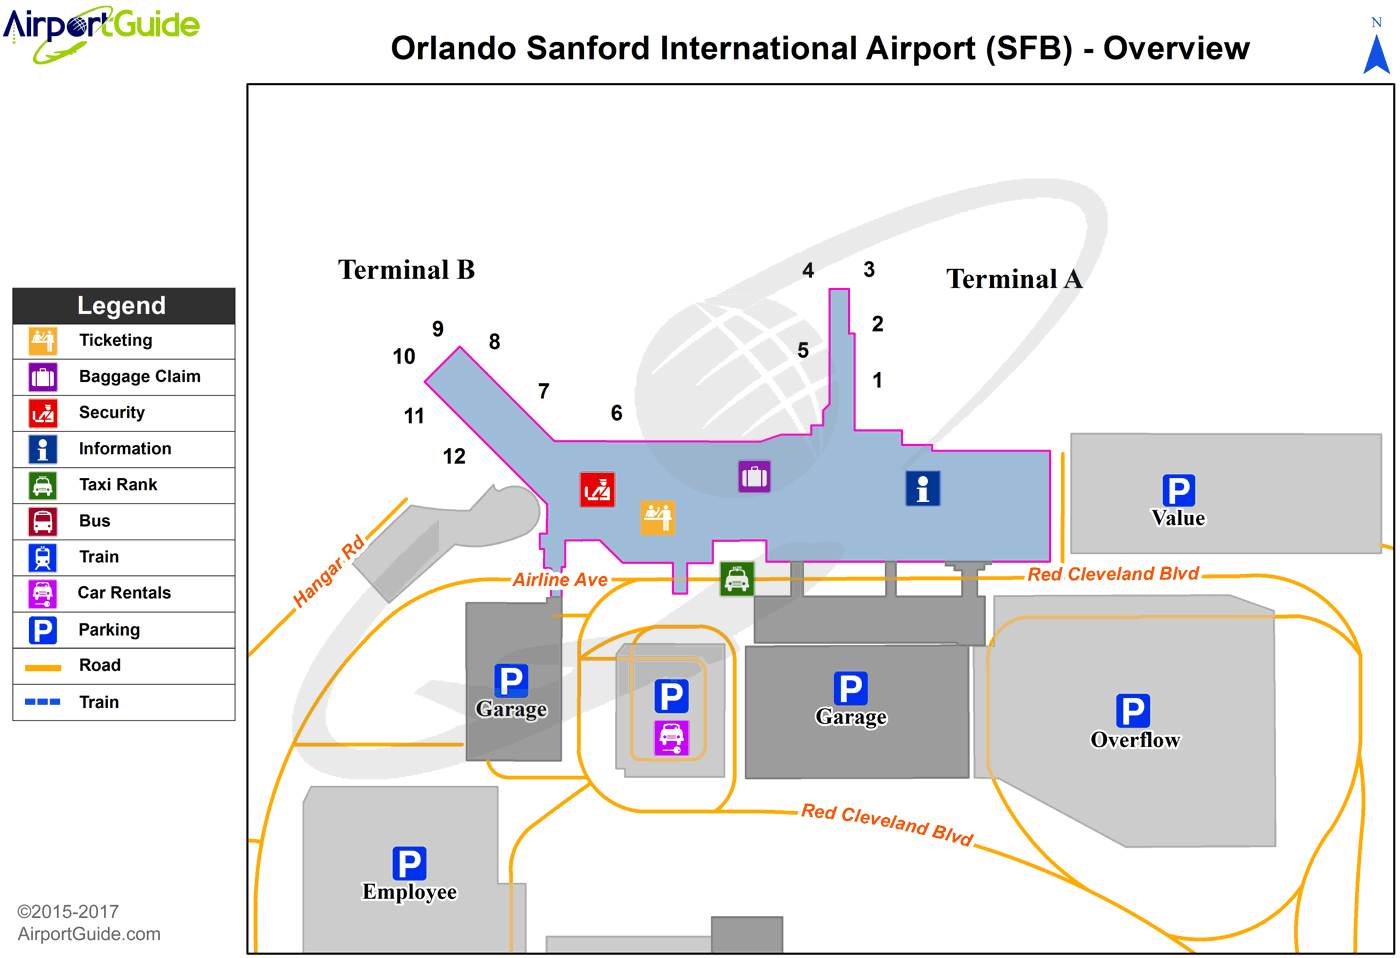 Orlando - Orlando Sanford International (SFB) Airport Terminal Map - Overview